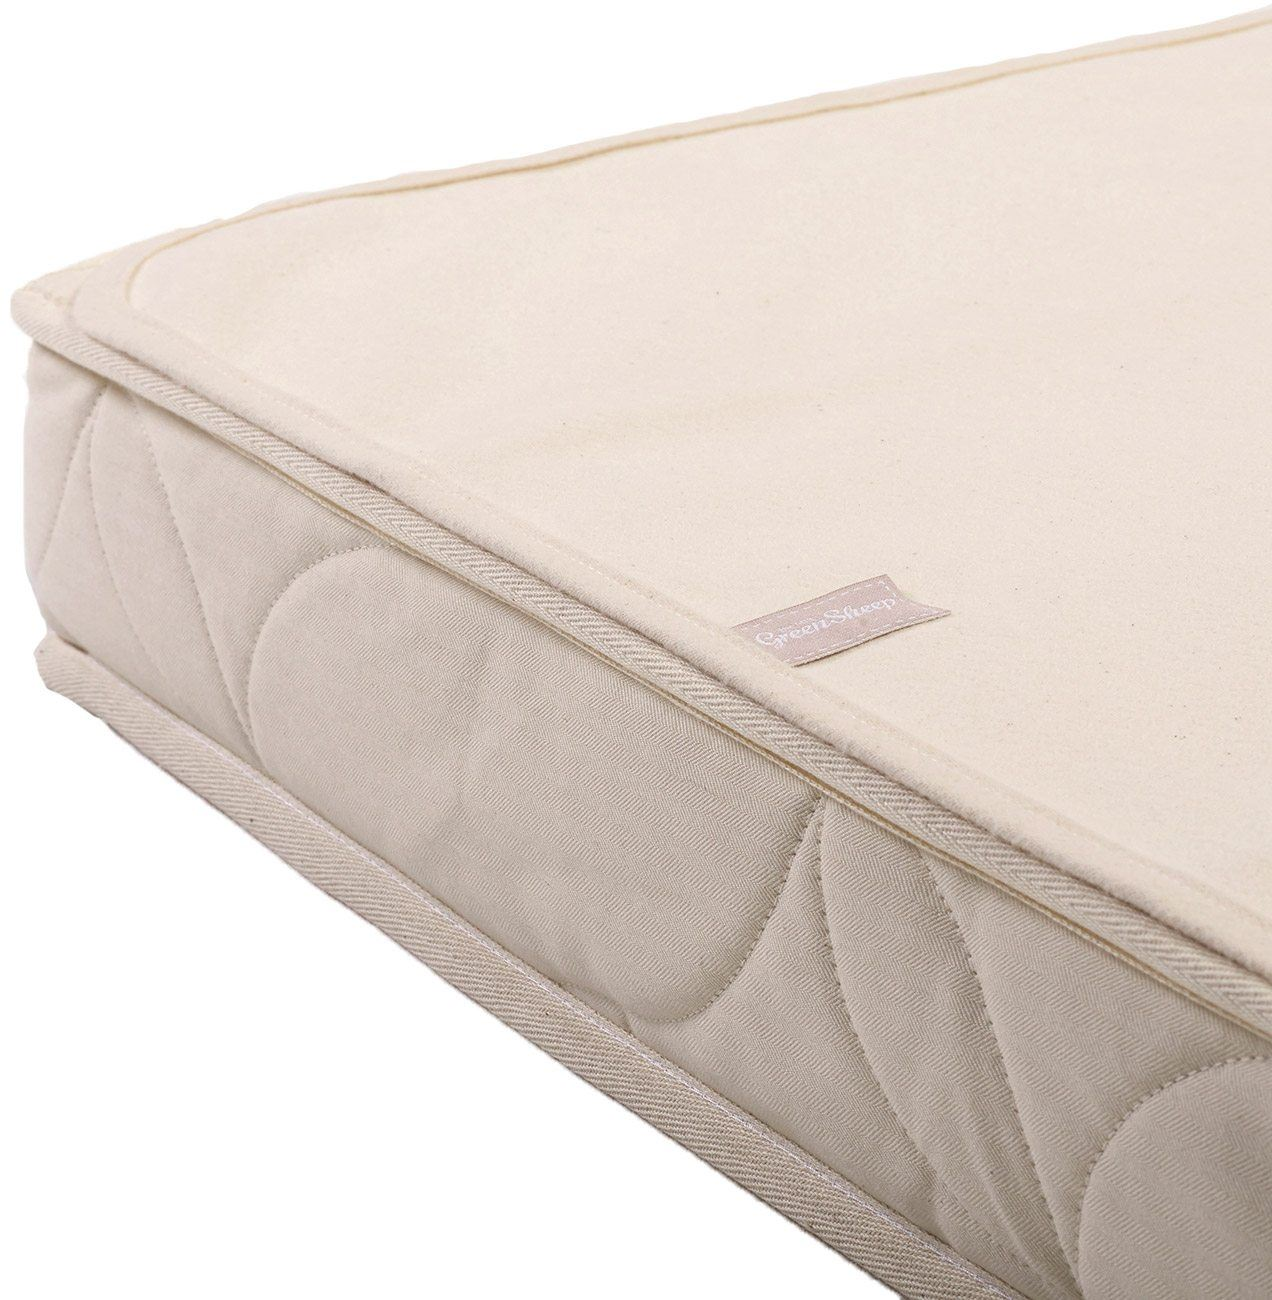 The Little Green Sheep Organic Waterproof Cot Bed Mattress Protector 70x140cm